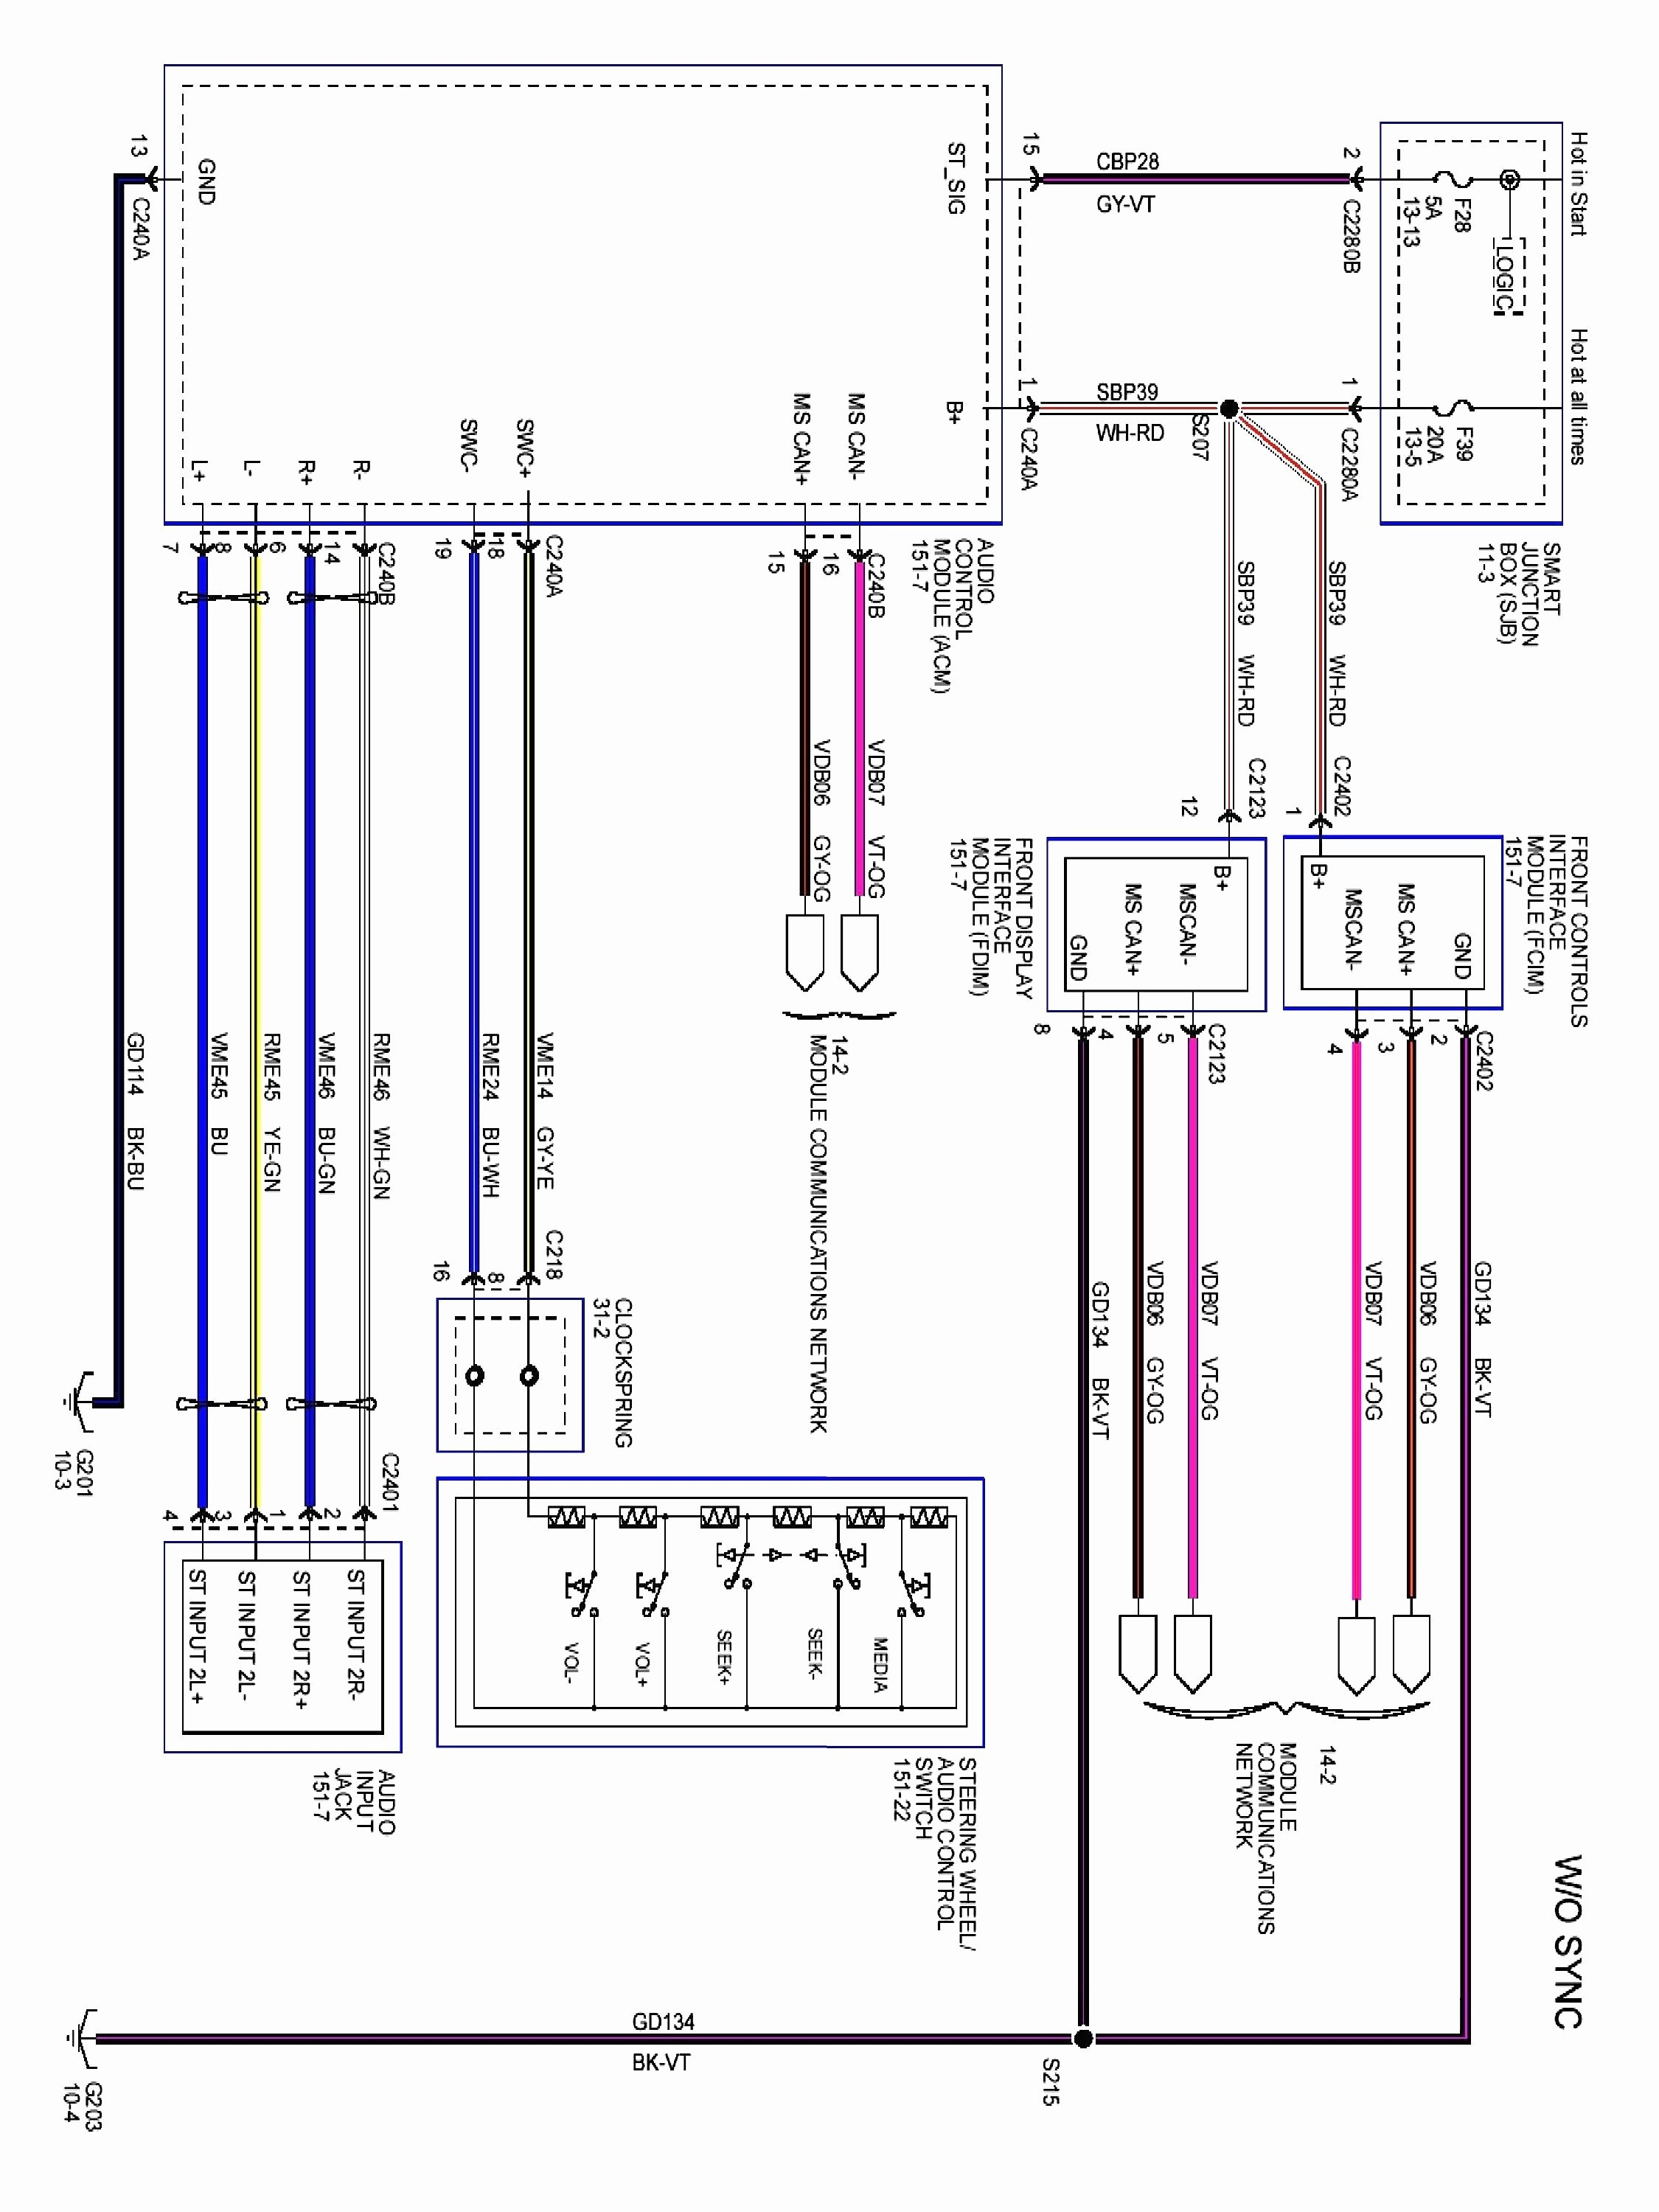 Car Stereo Hook Up Diagram Wiring Diagram for Amplifier Car Stereo Best Amplifier Wiring Of Car Stereo Hook Up Diagram